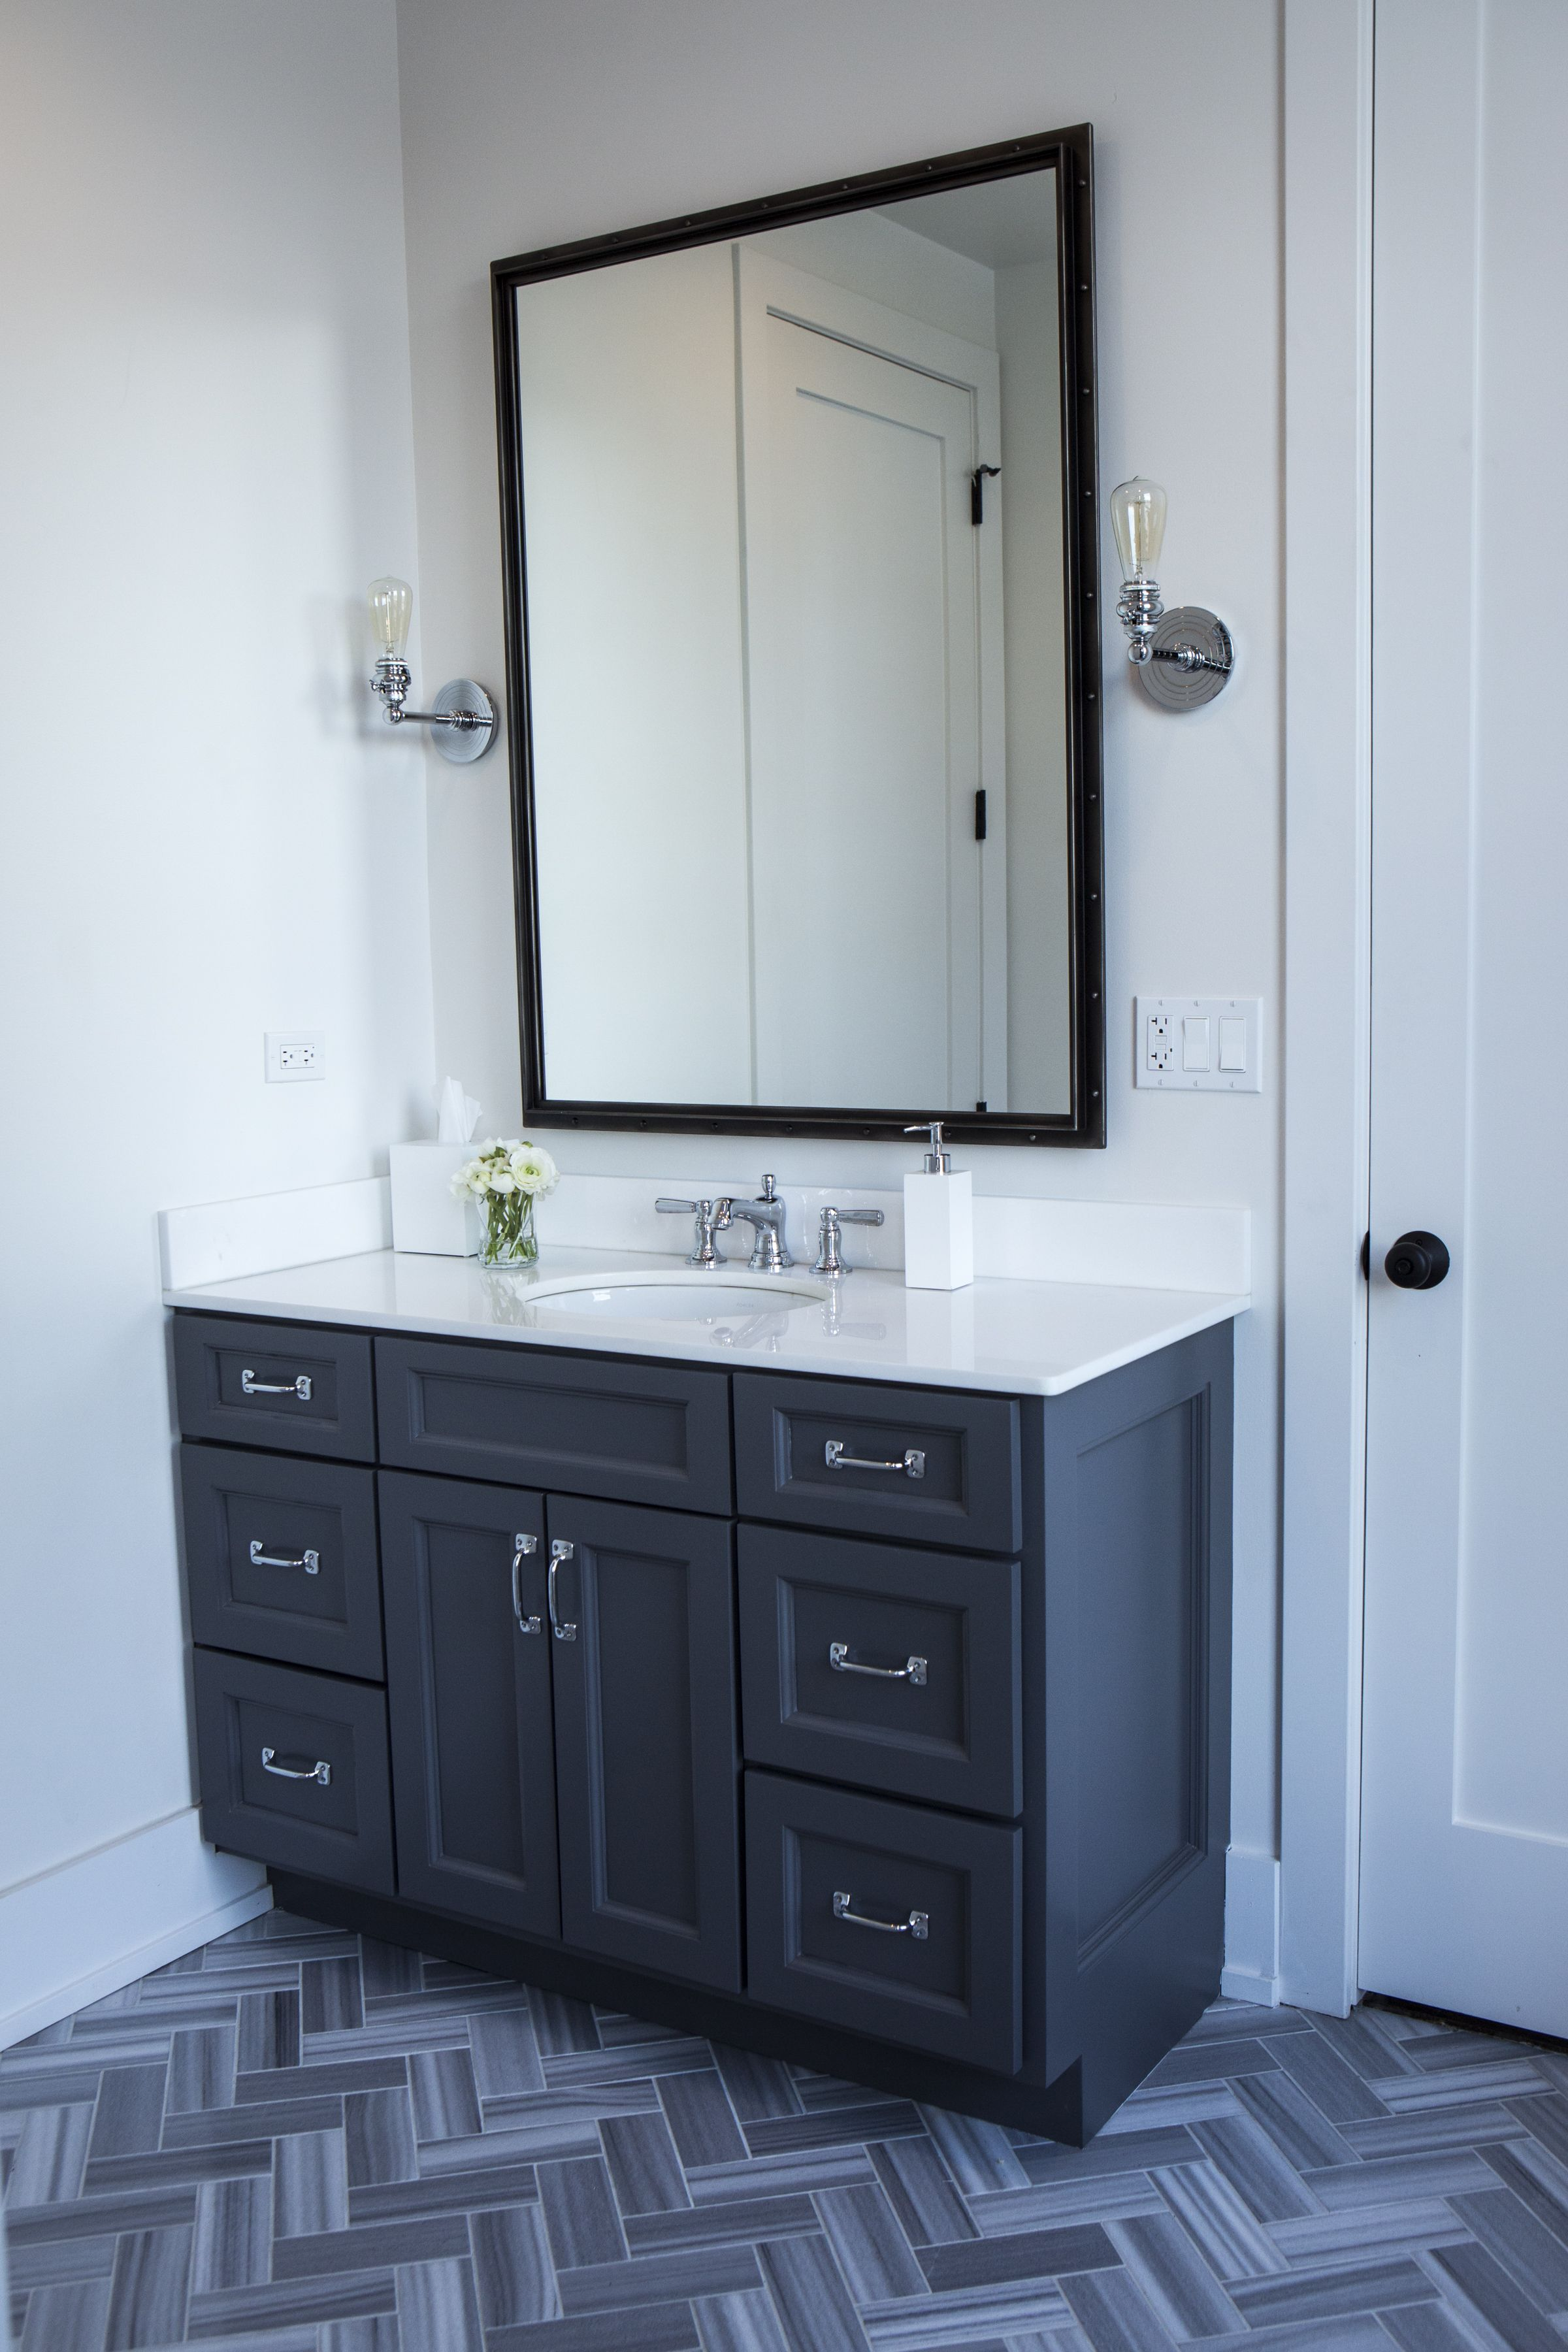 Alexandra Kaehler Design - bathrooom before and after - Photo by ...